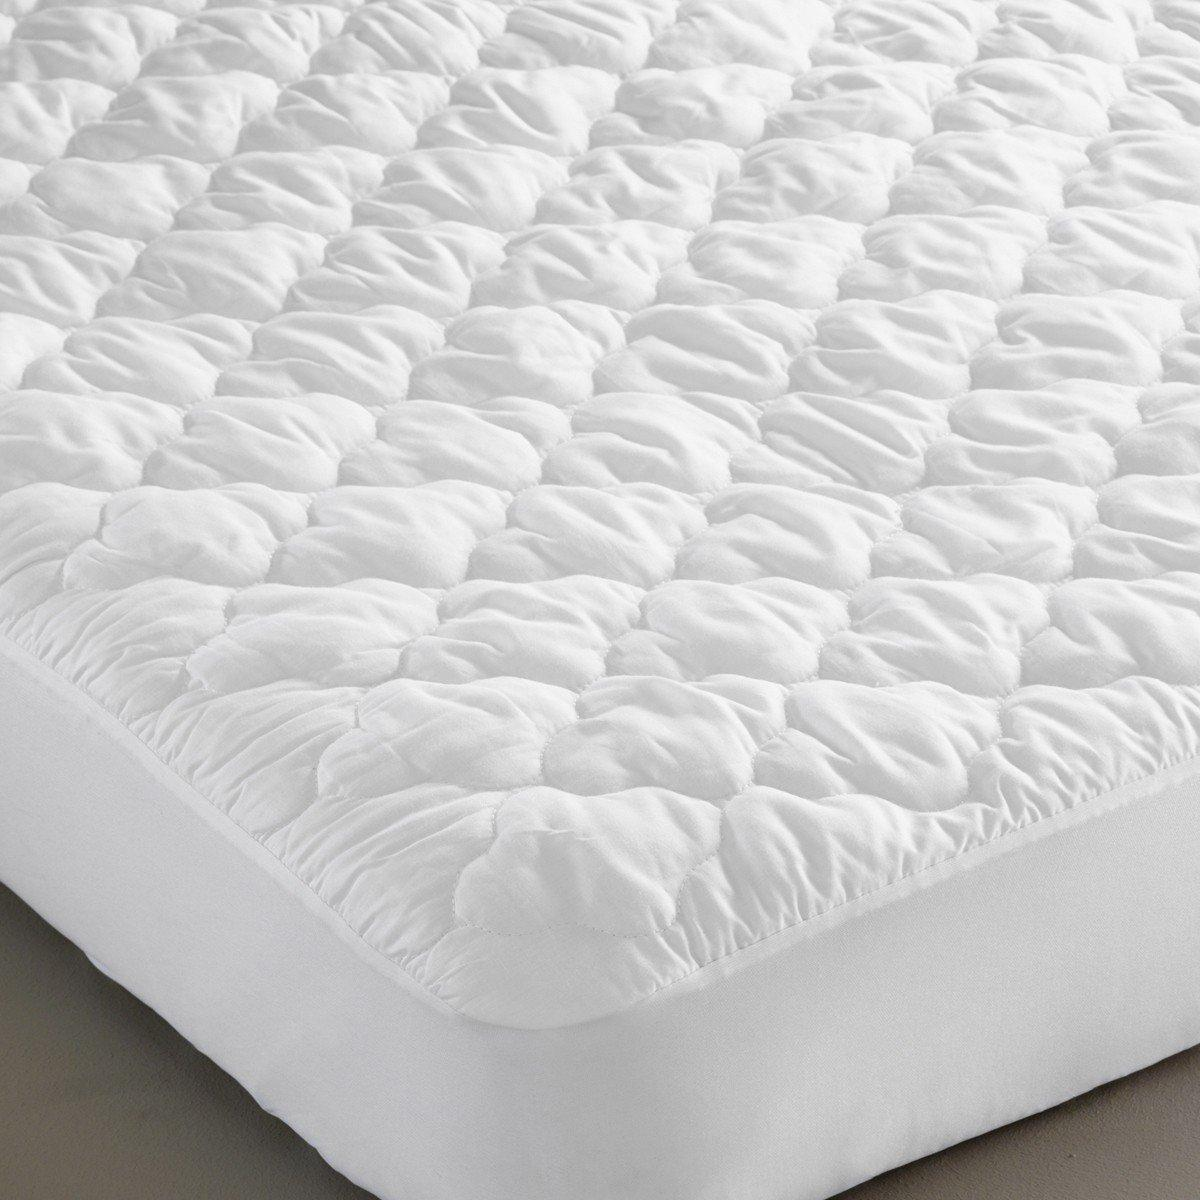 Waterproof Mattress Protector - Quilted Polycotton Single-0